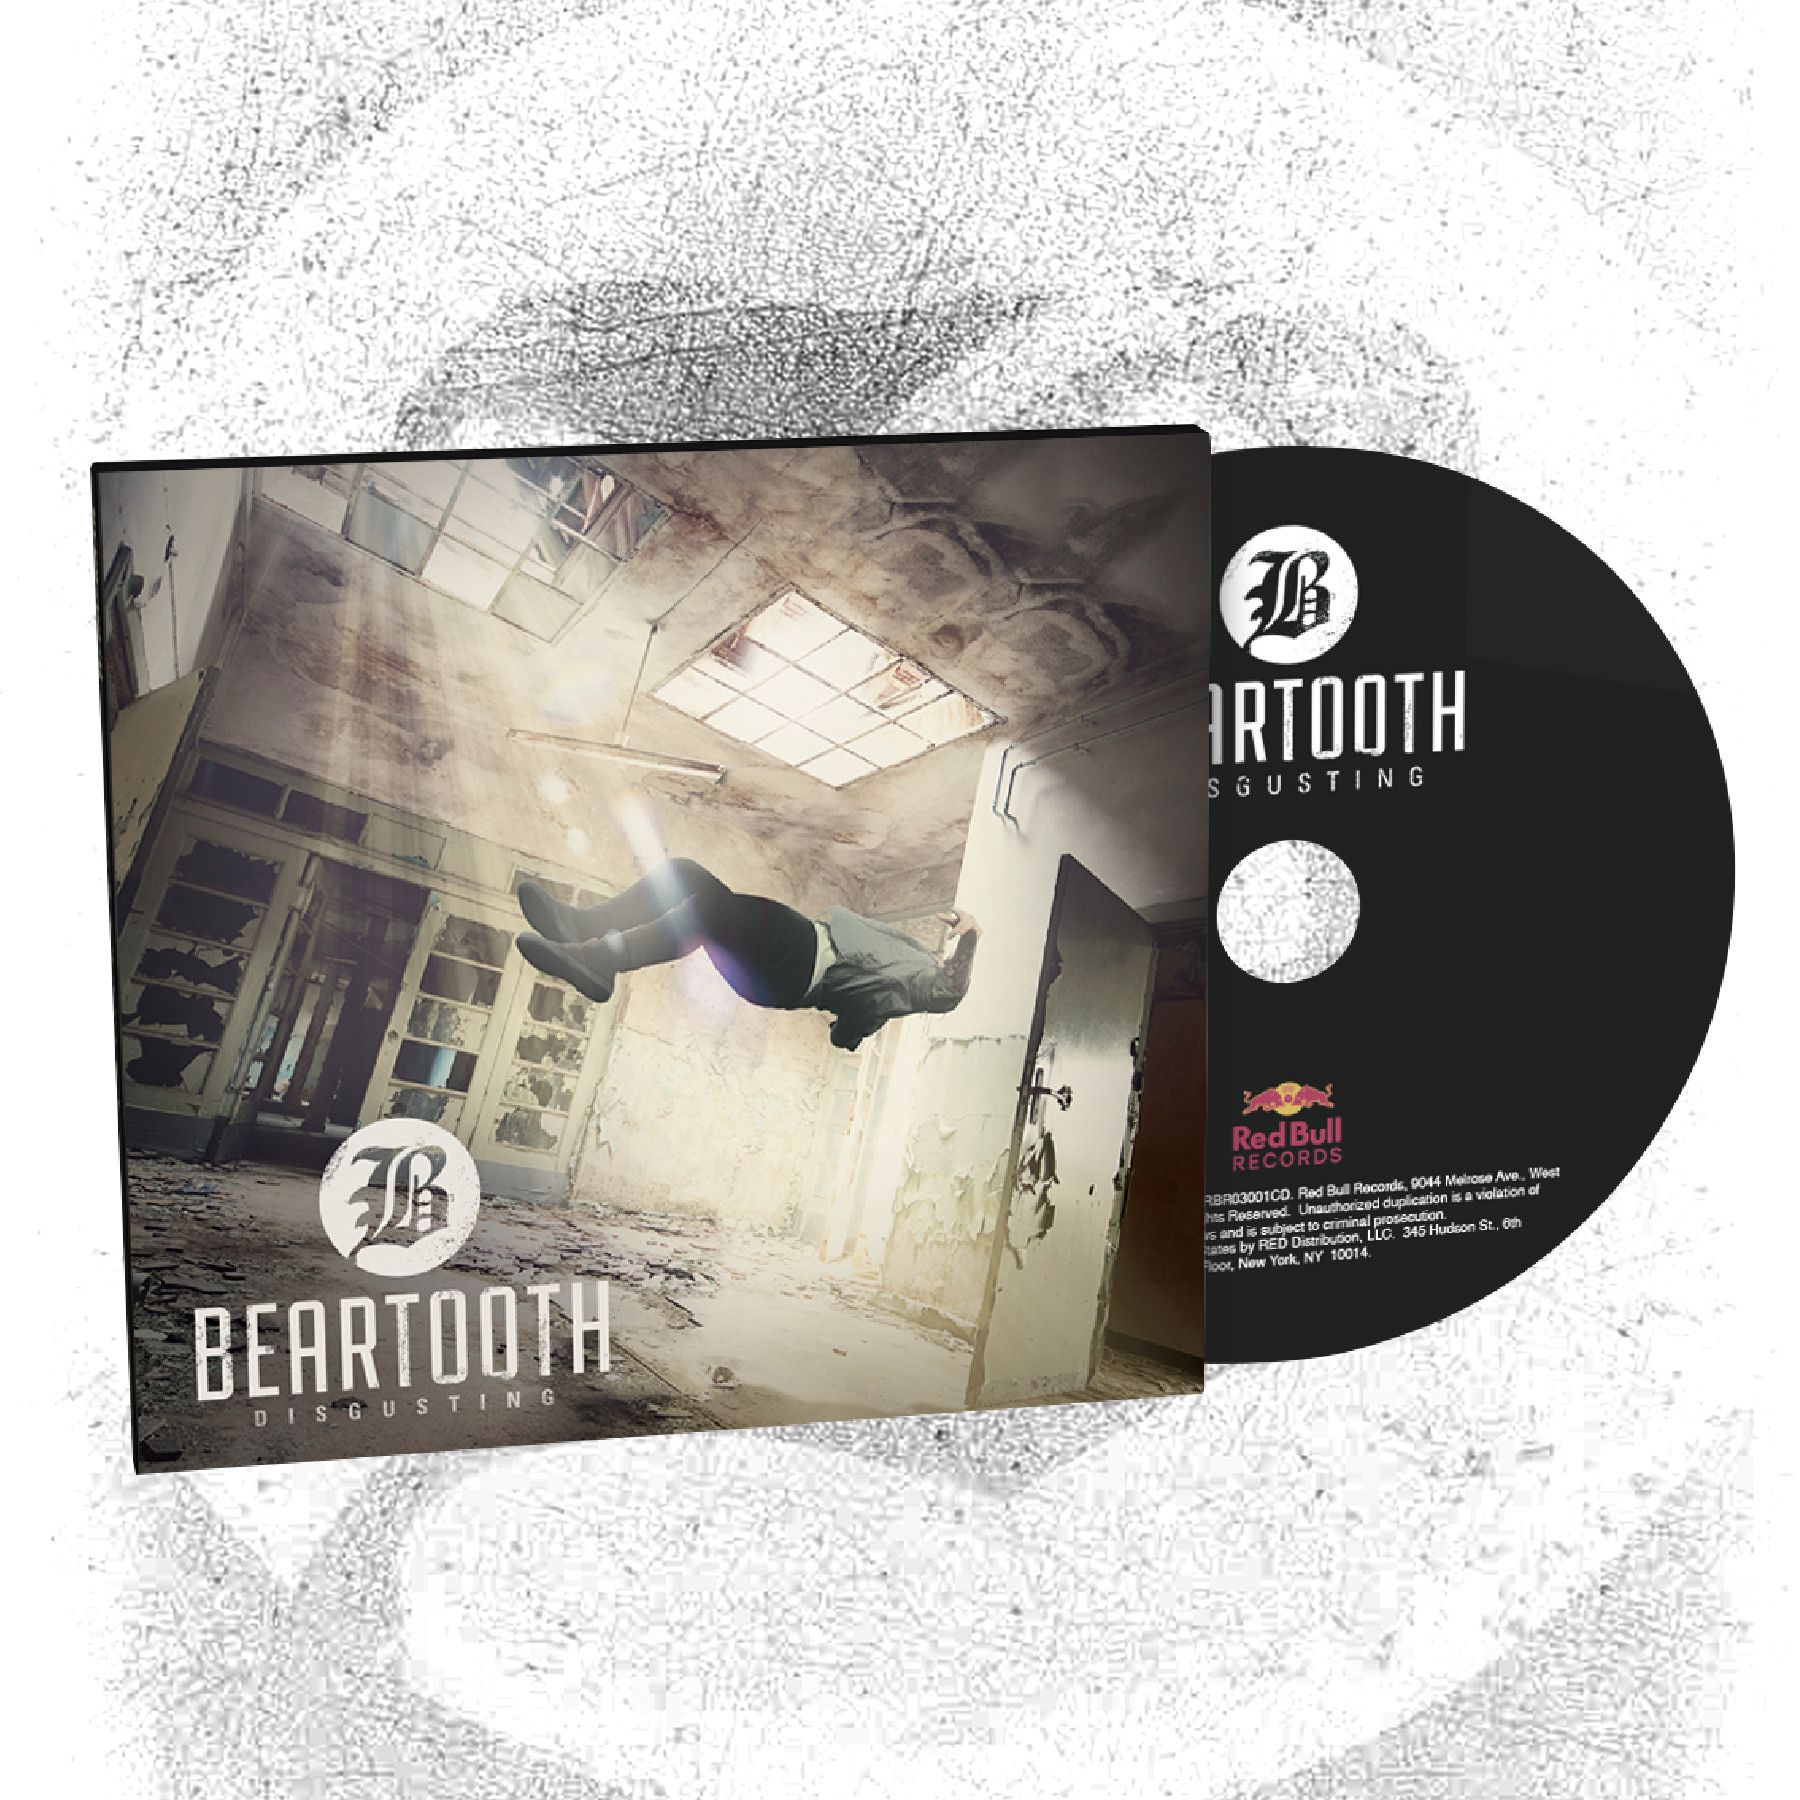 Beartooth Aggressive Black New T-Shirt Fruit of the Loom ALL SIZES